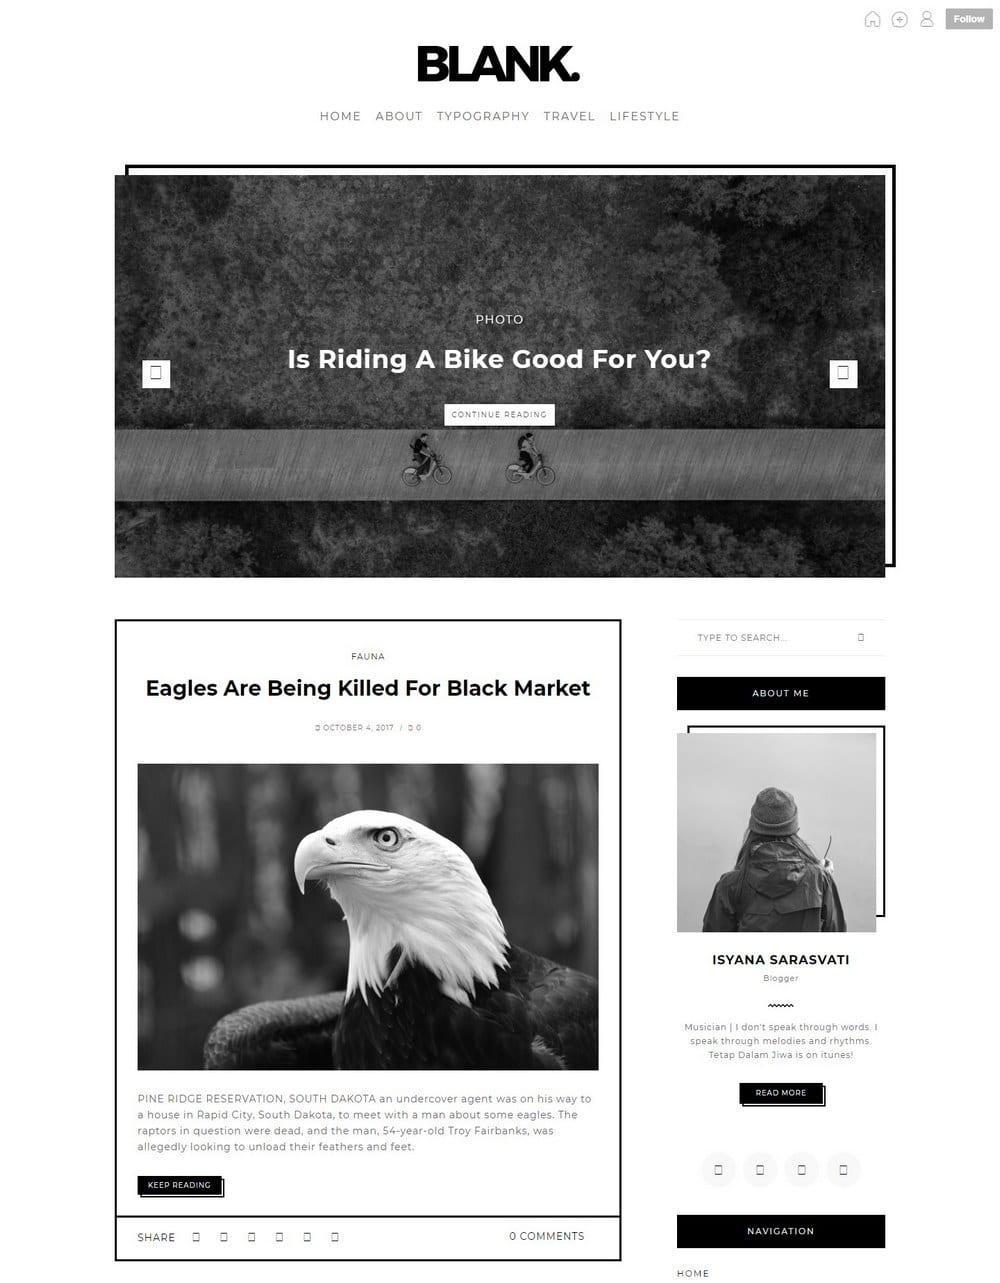 blank-one-column-tumblr-theme